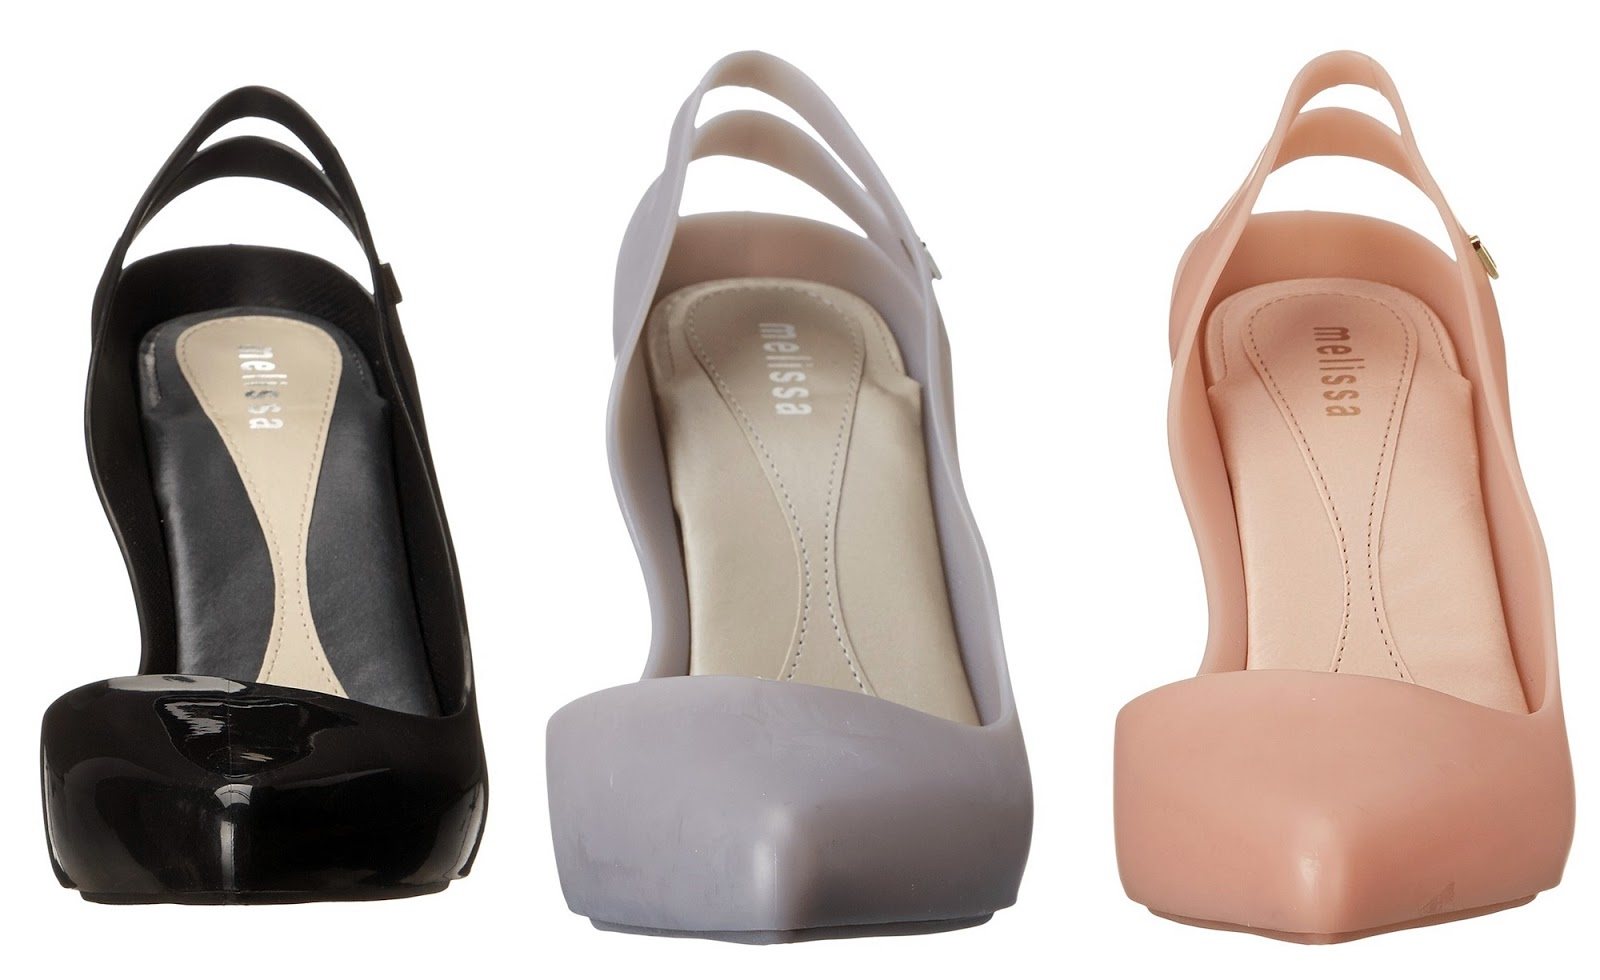 64c753ad16e Shoe of the Day   Melissa Shoes Classic Special Pumps   SHOEOGRAPHY